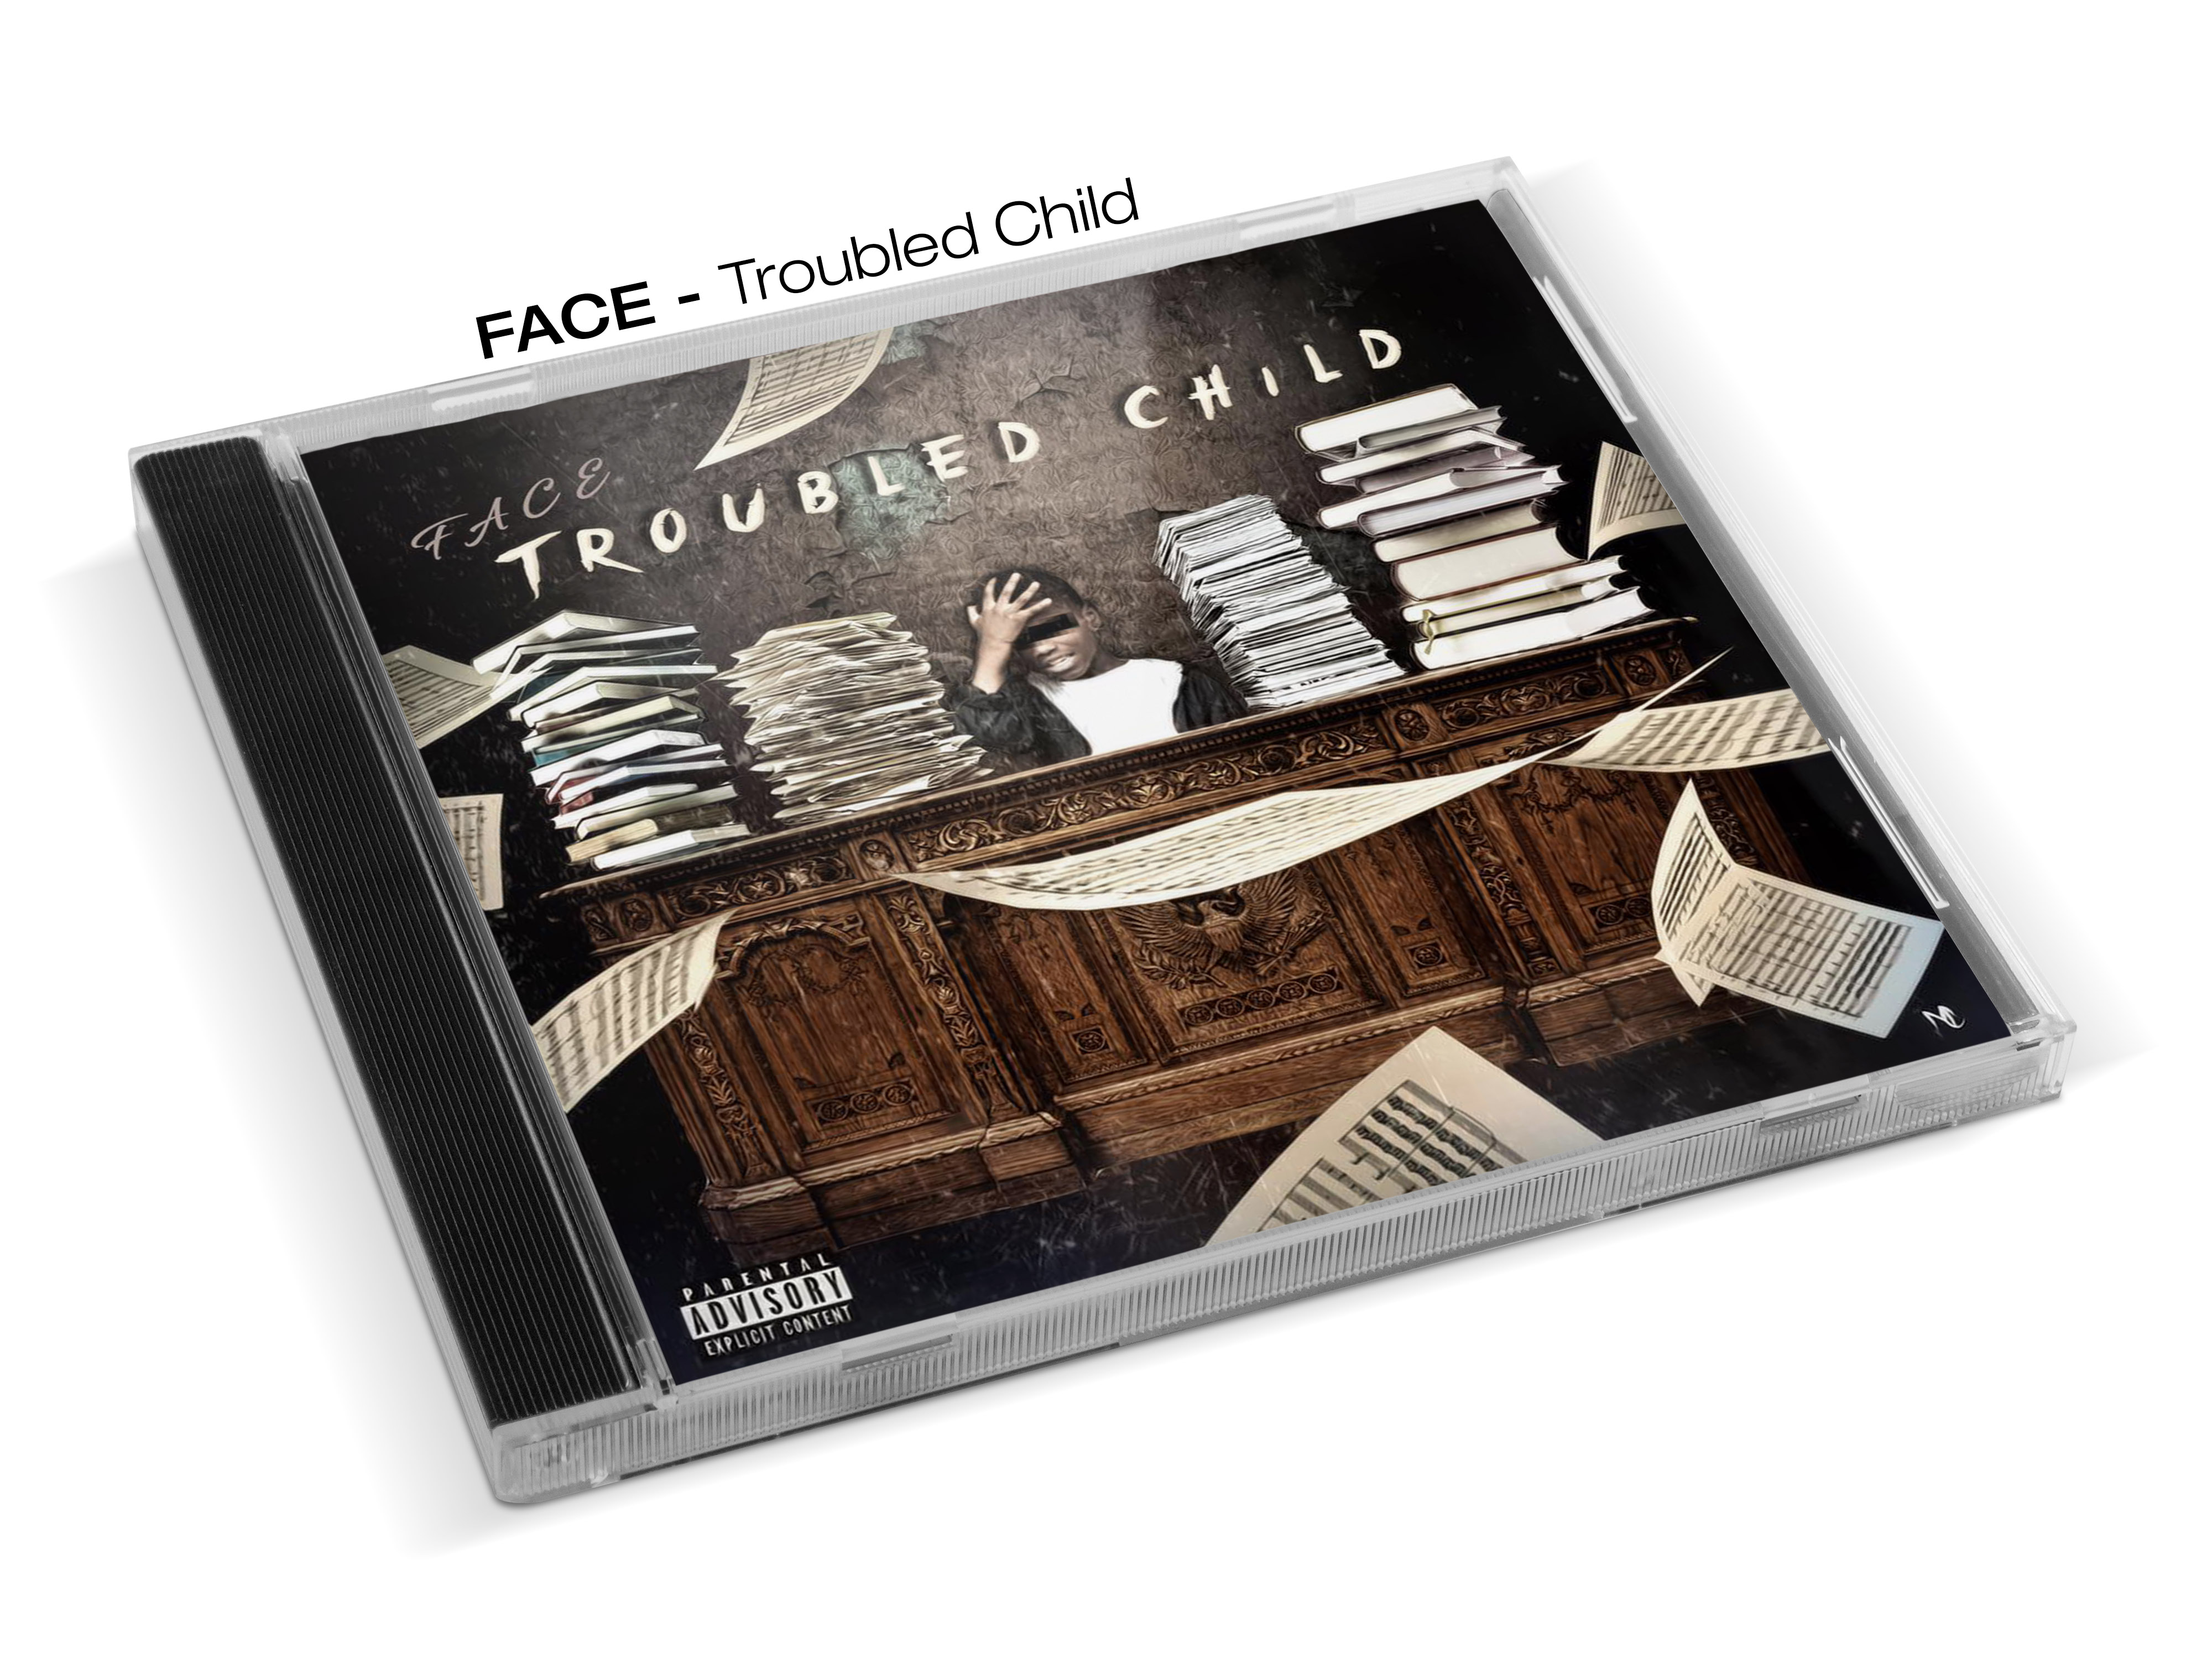 Troubled Child CD